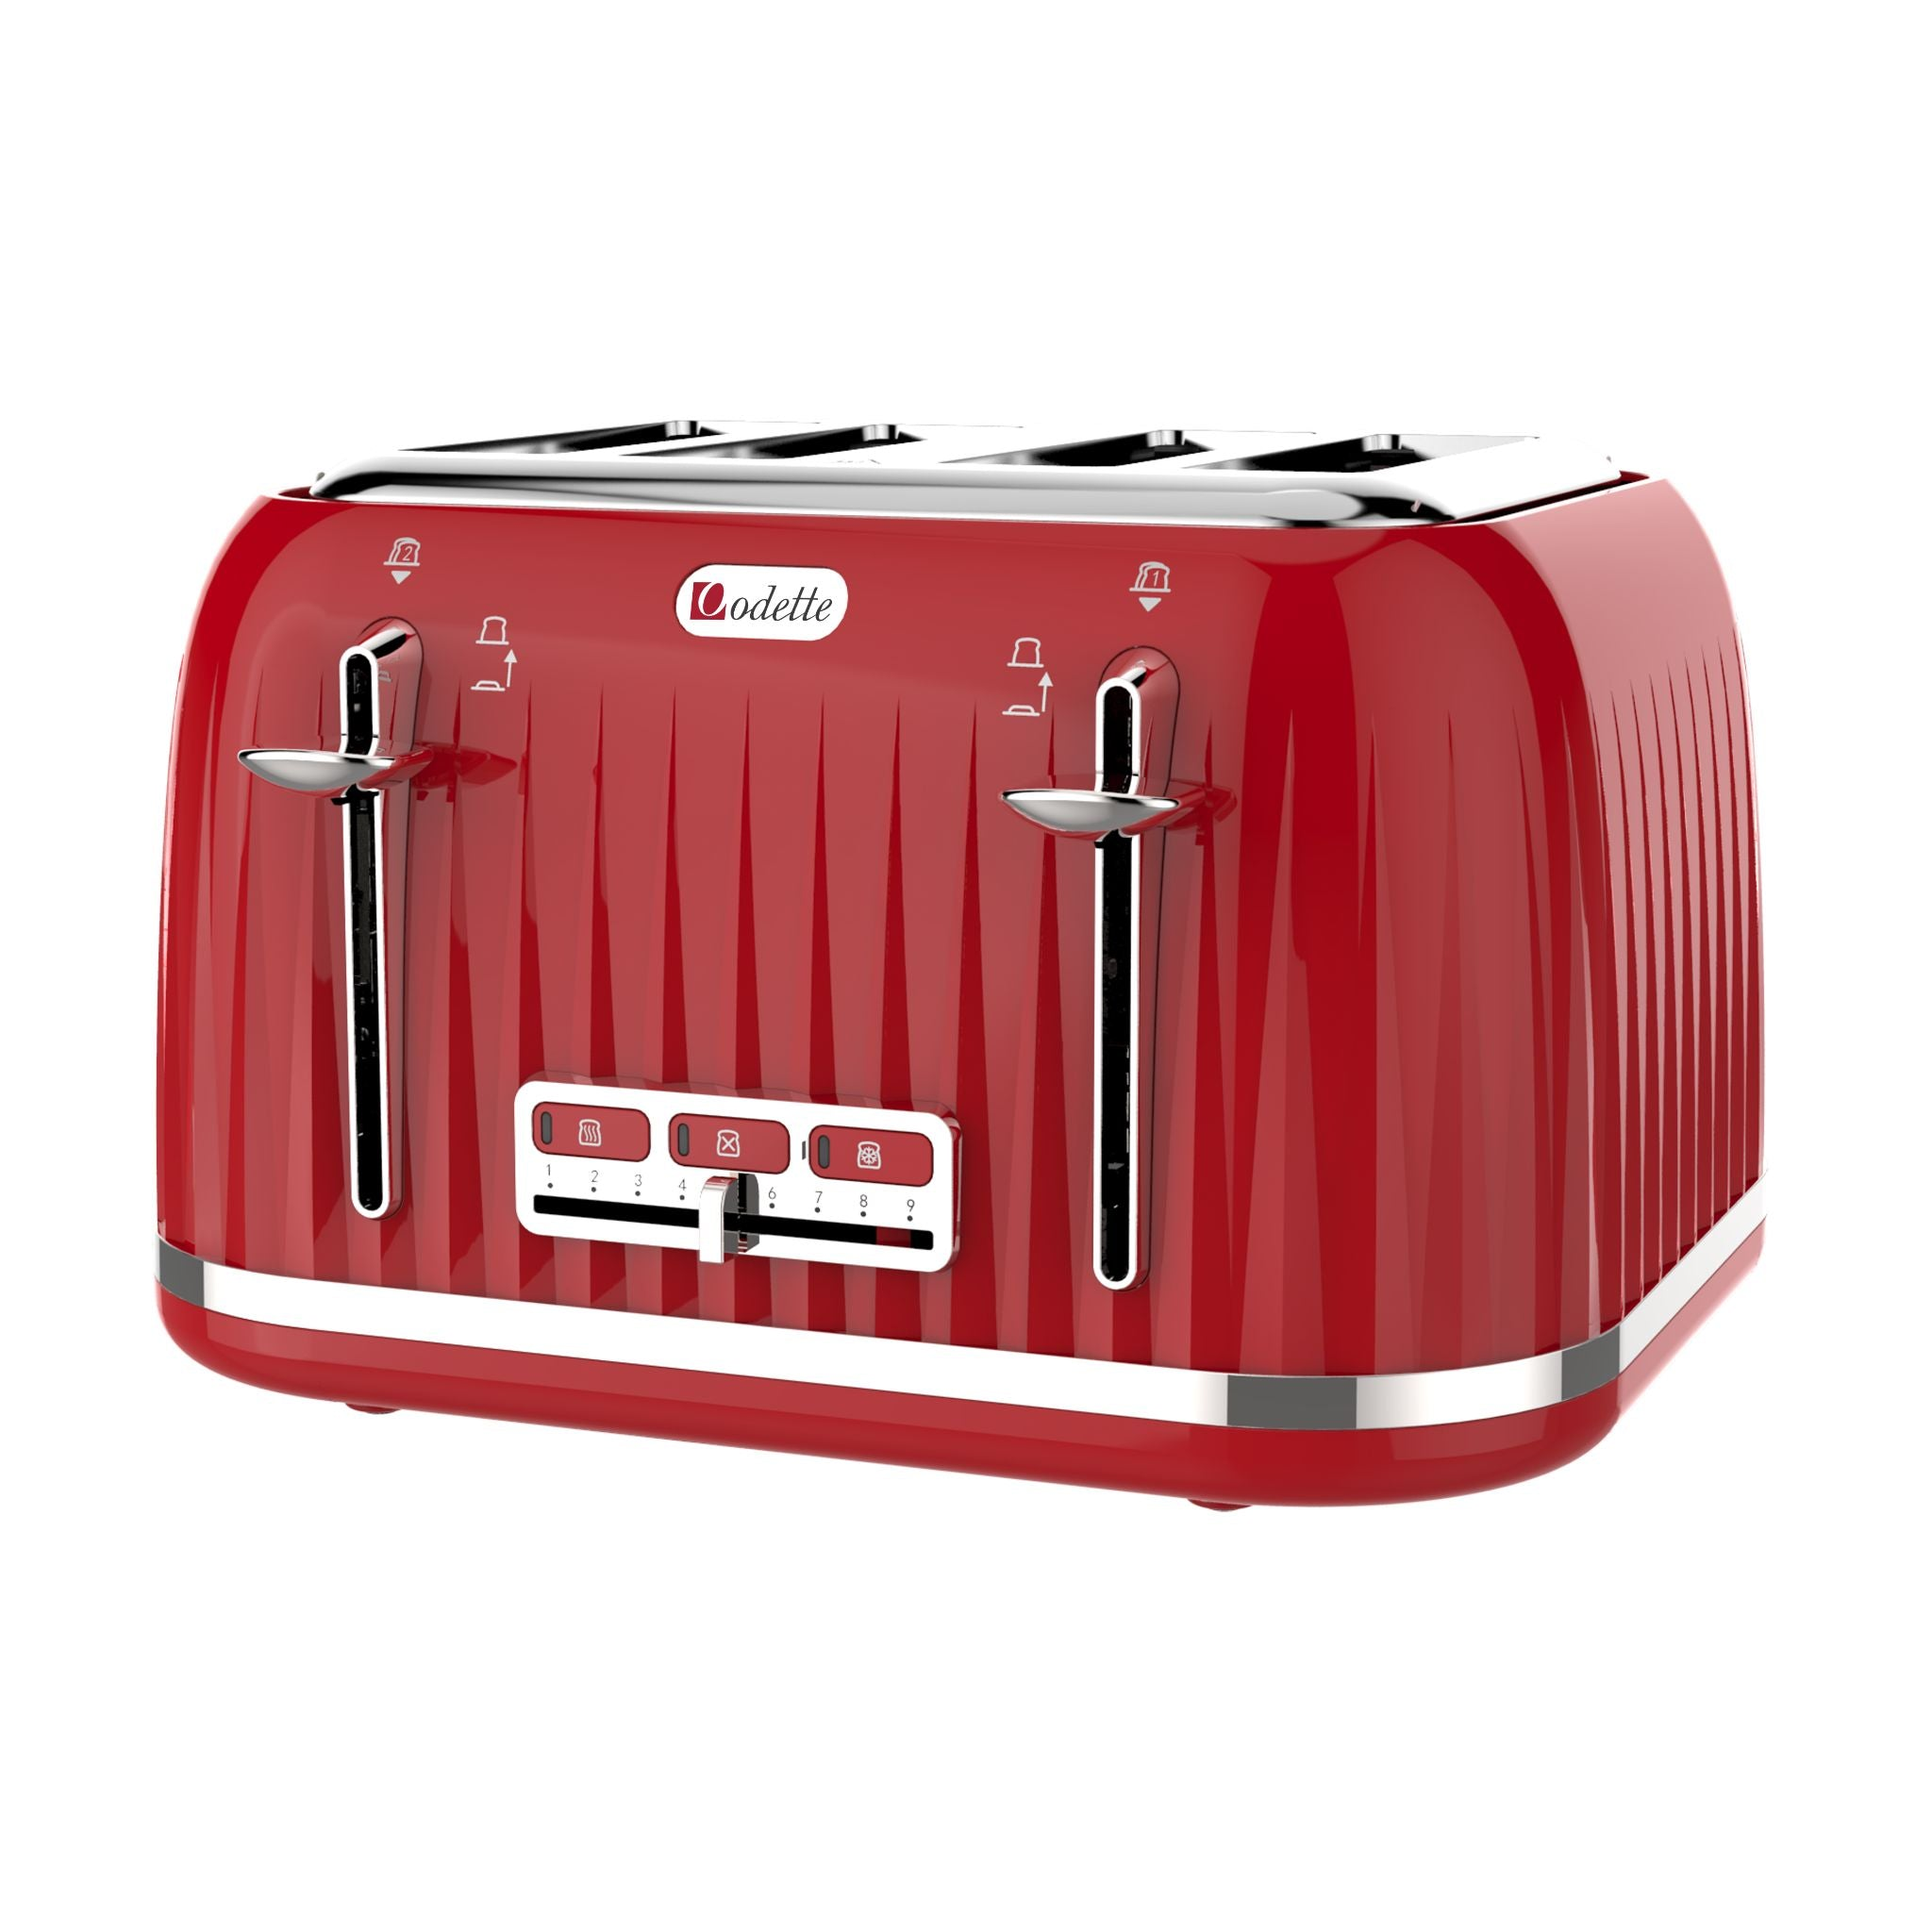 Odette Jukebox Series 1.7L Retro 4-slice Bread Toaster - Red